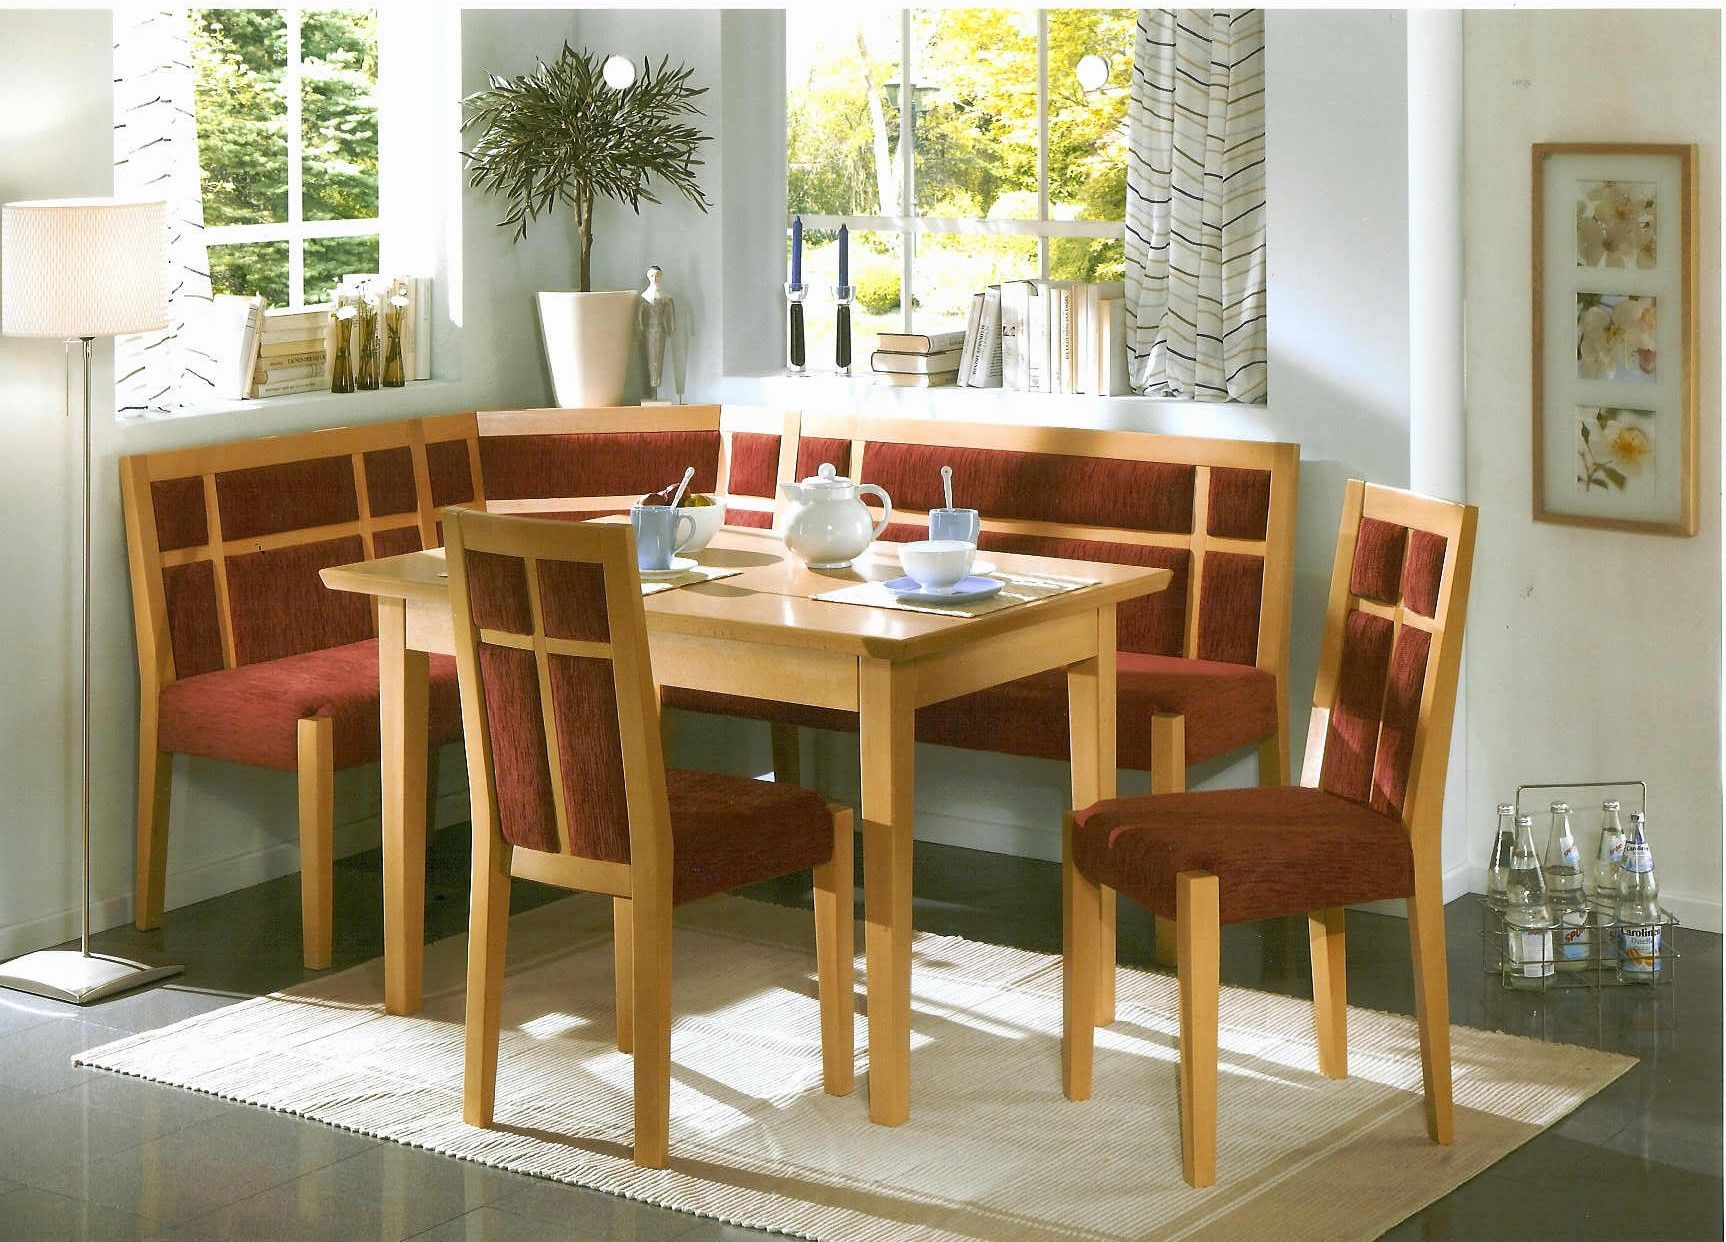 Solid Wood Farmhouse Stl Kitchen Nook Corner Bench Booth Dining Set Table Chairs Kitchen Table Settings Dining Room Small Corner Kitchen Tables